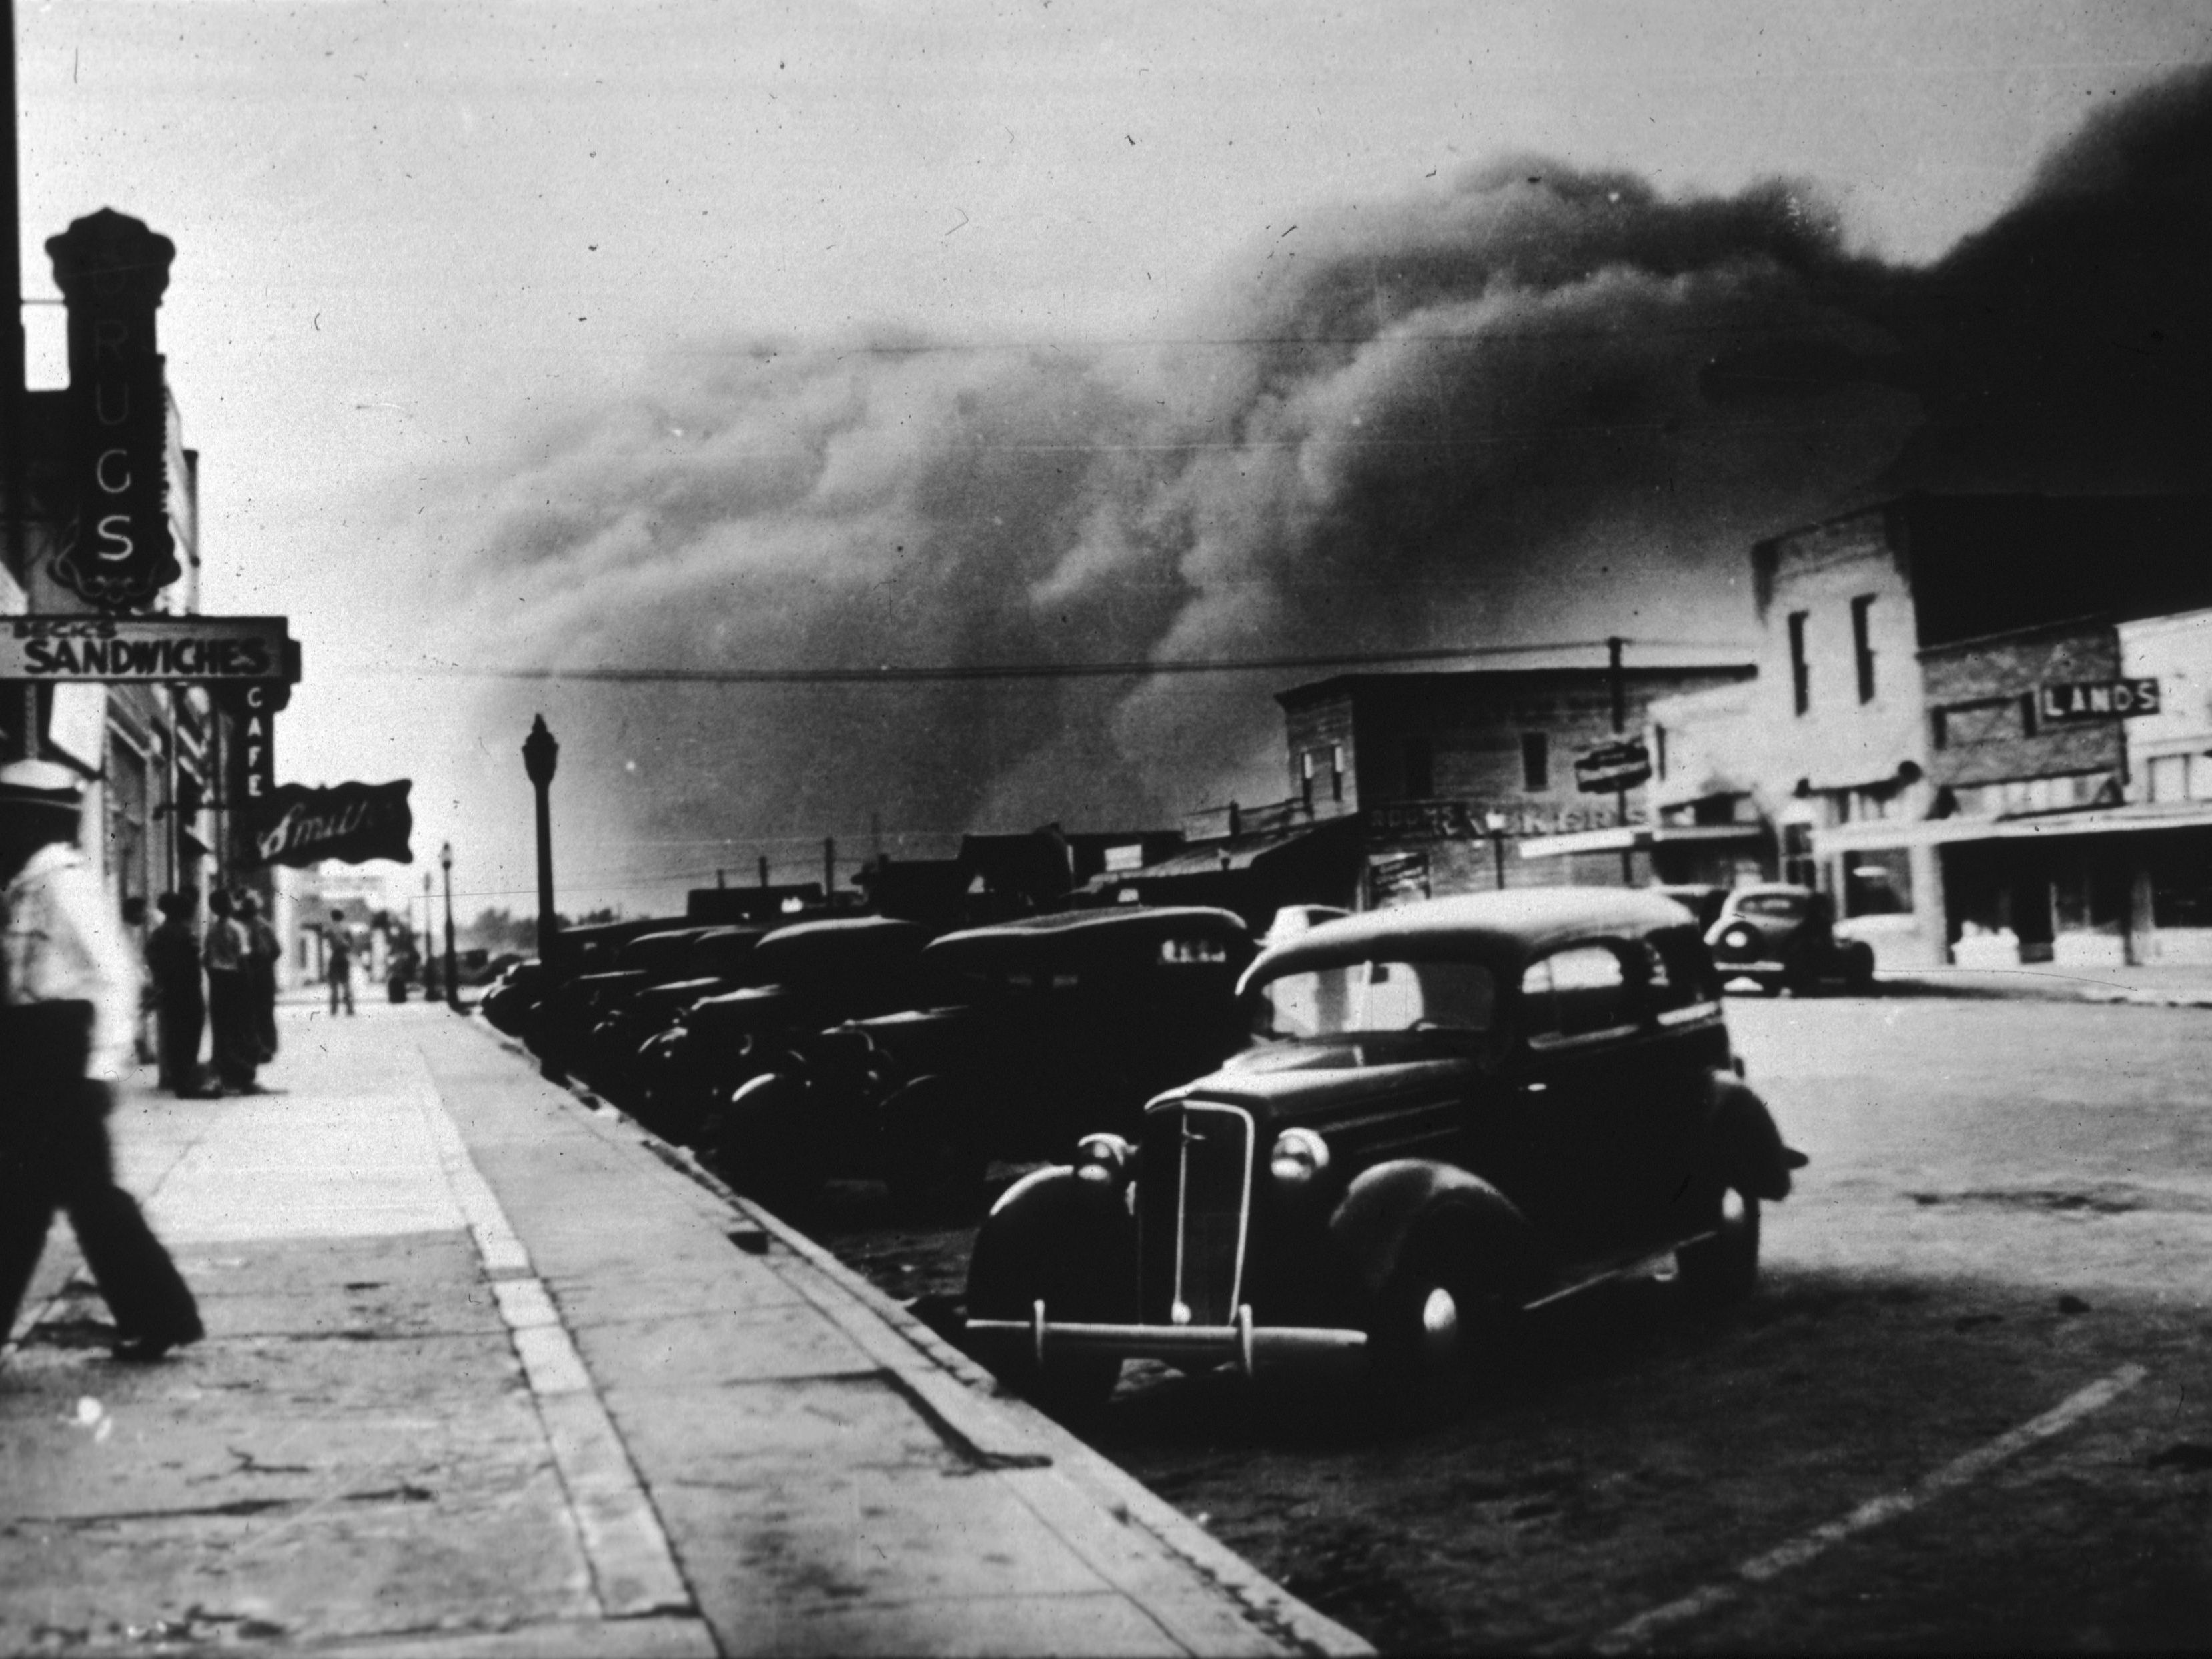 Dust Bowl: Definition, Causes, When, Where, Effect, Map on desert states map, california states map, trail of tears states map, corn belt states map, great plains states map, thomas jefferson states map, sunbelt states map, oklahoma states map, civil war states map, bible belt states map, virginia states map, florida states map, labeled us map, cotton belt states map, pacific states map, michigan states map, new york city states map, africa states map, racism states map, louisiana territory states map,